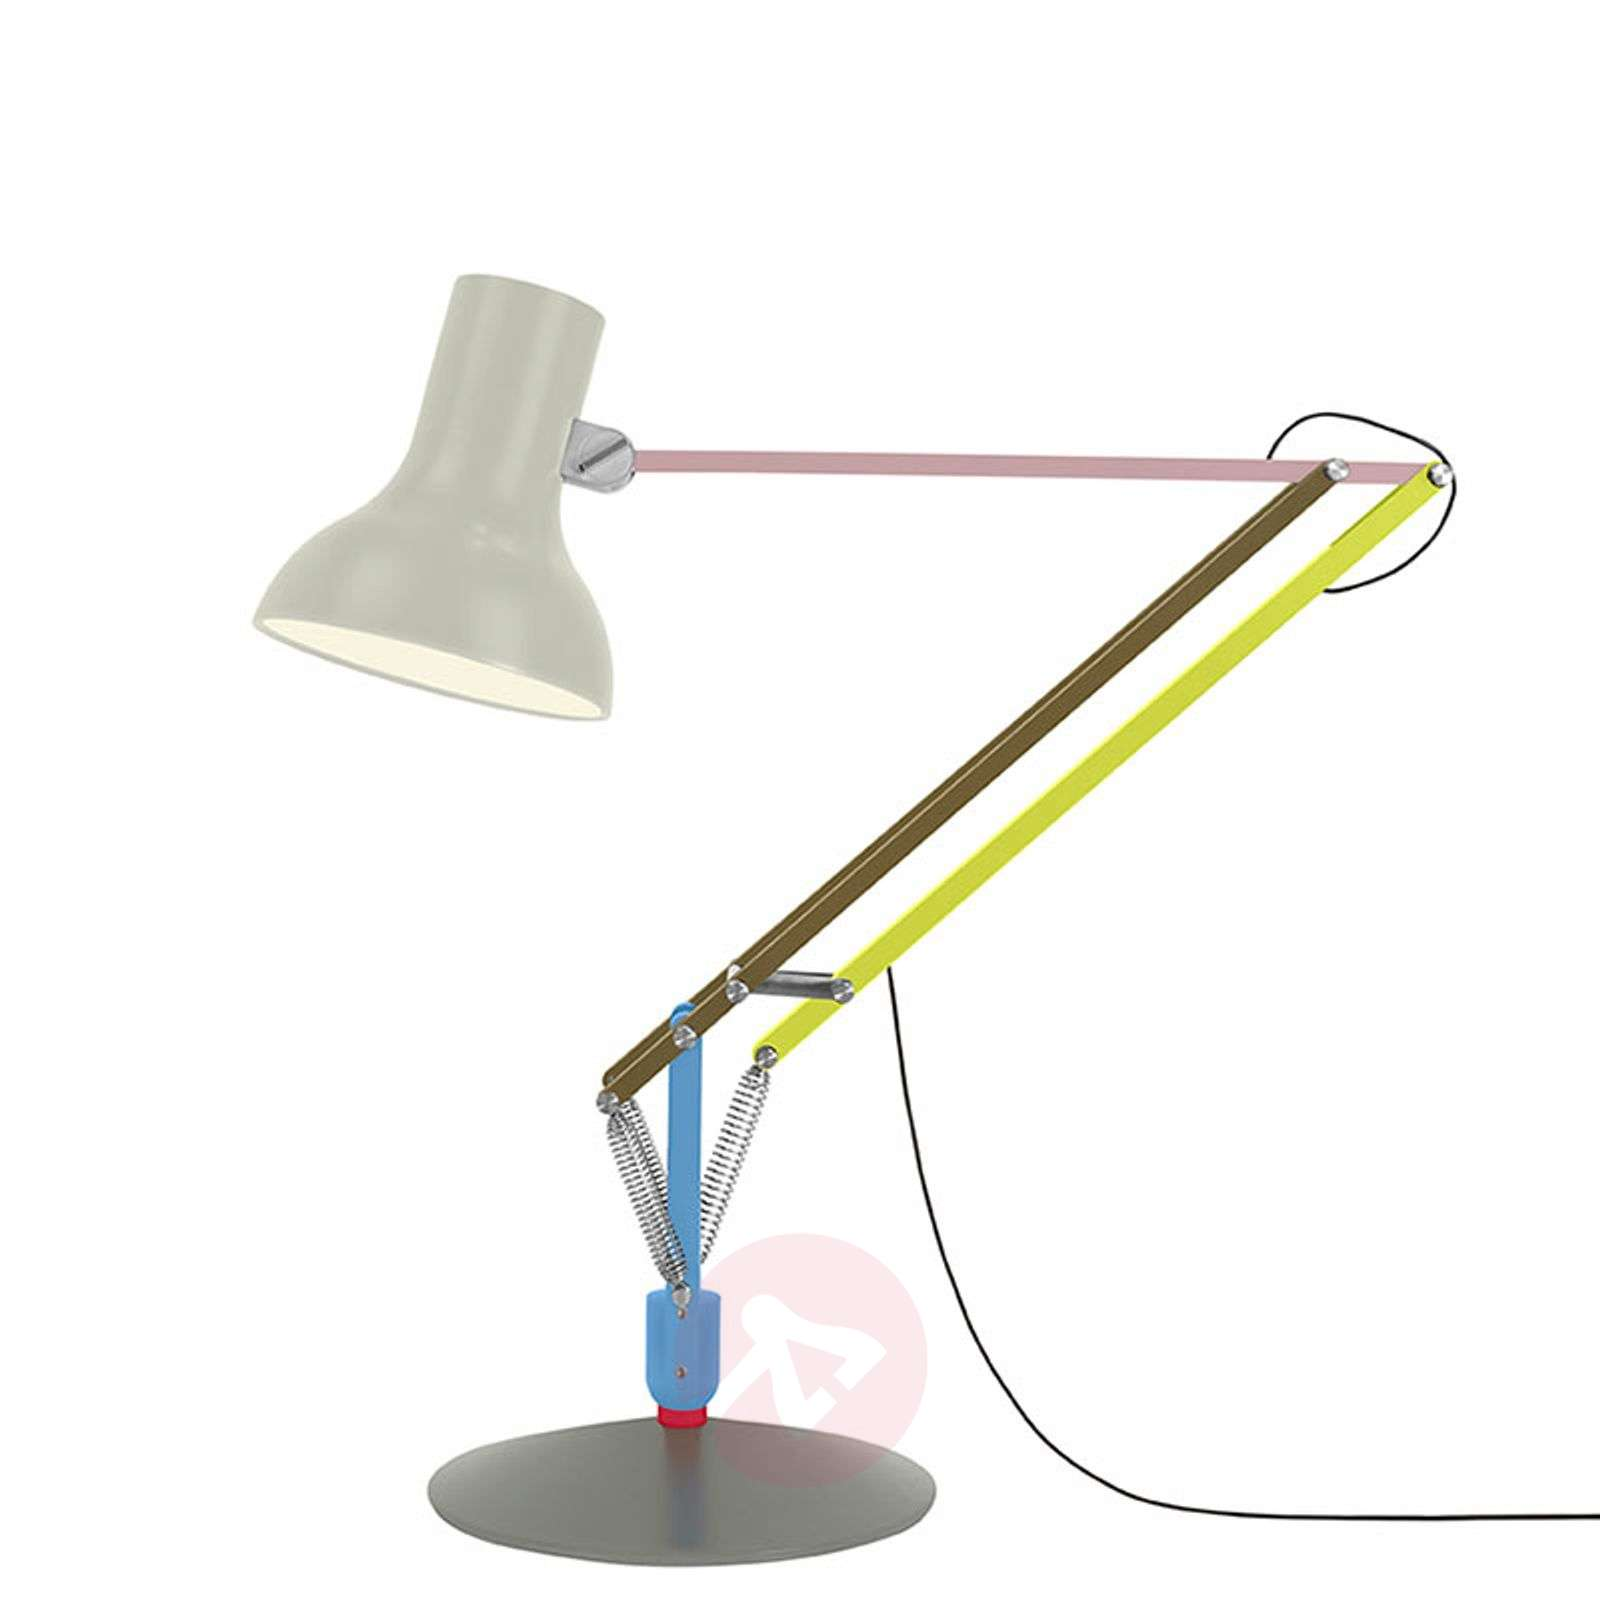 Anglepoise Type 75 Giant floor lamp Paul Smith 1-1073066-01